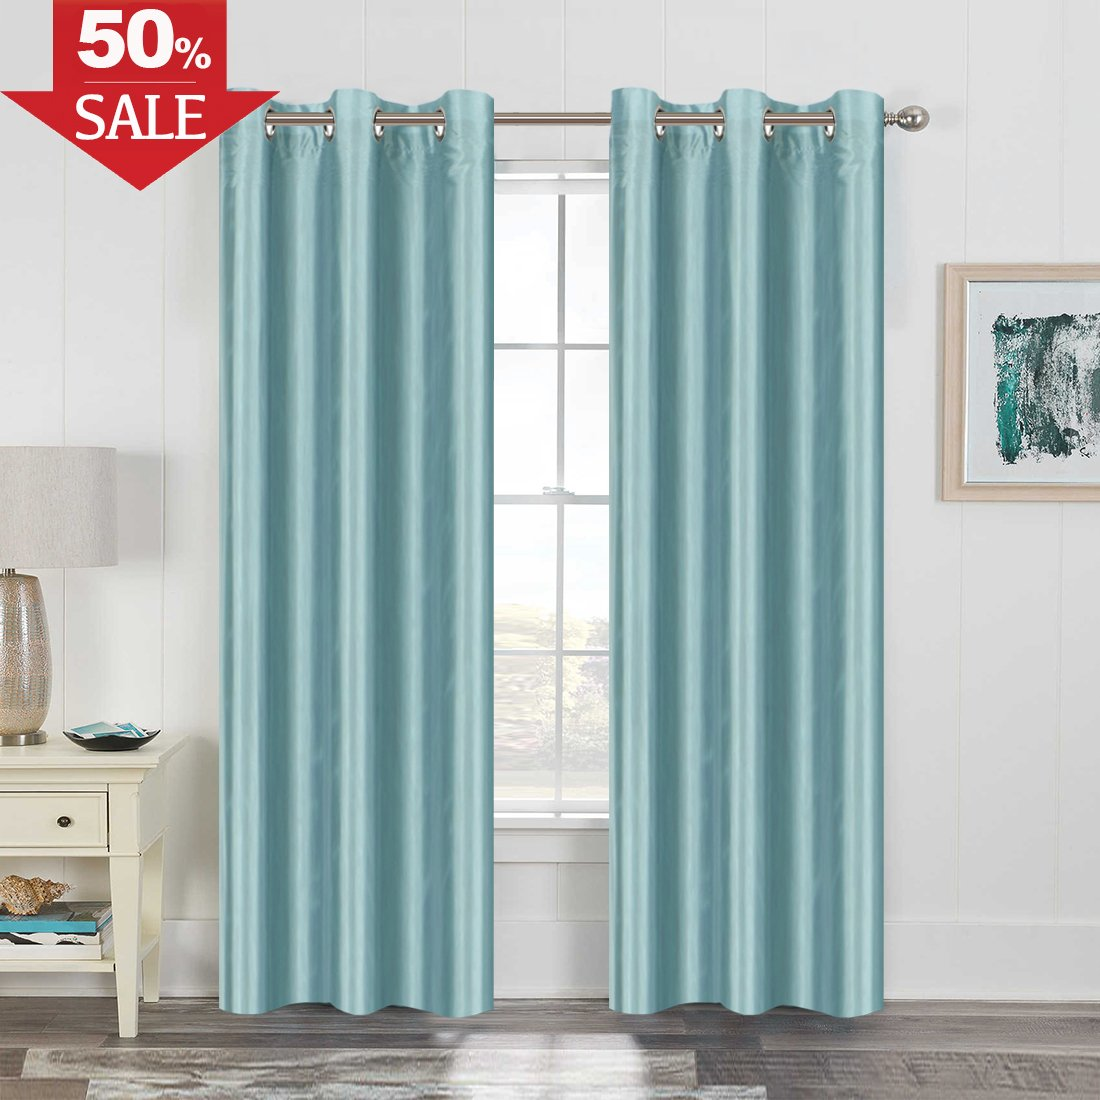 H.VERSAILTEX Faux Silk Satin Curtains 63 inch Length for Bedroom Window Curtain Panels Dupioni Light Reducing Drapes for Living Room Window Treatment Set, Grommet Top, 1 Panel, Beige